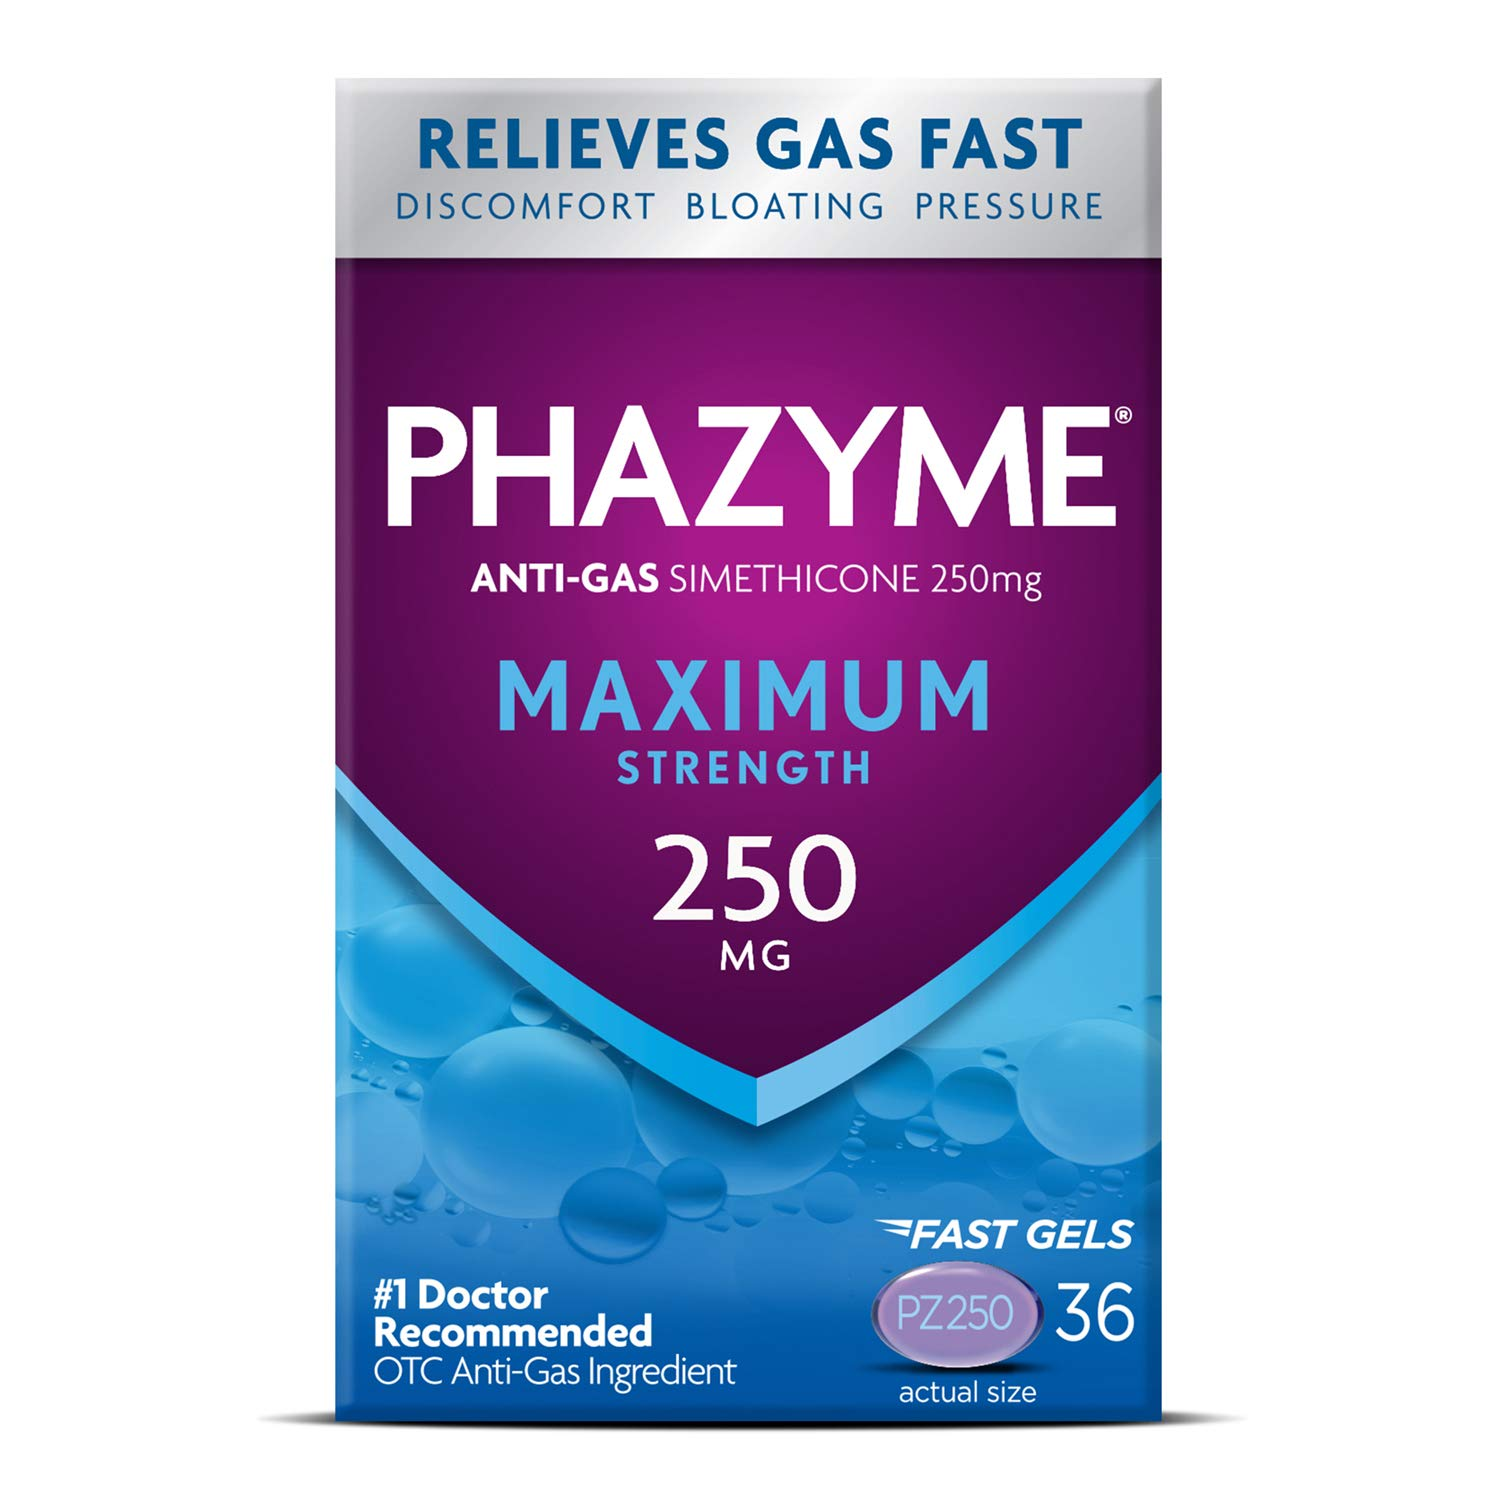 Phazyme Maximum Strength Gas and Bloating Relief, 250 mg Simethicone, 36 Fast Gels